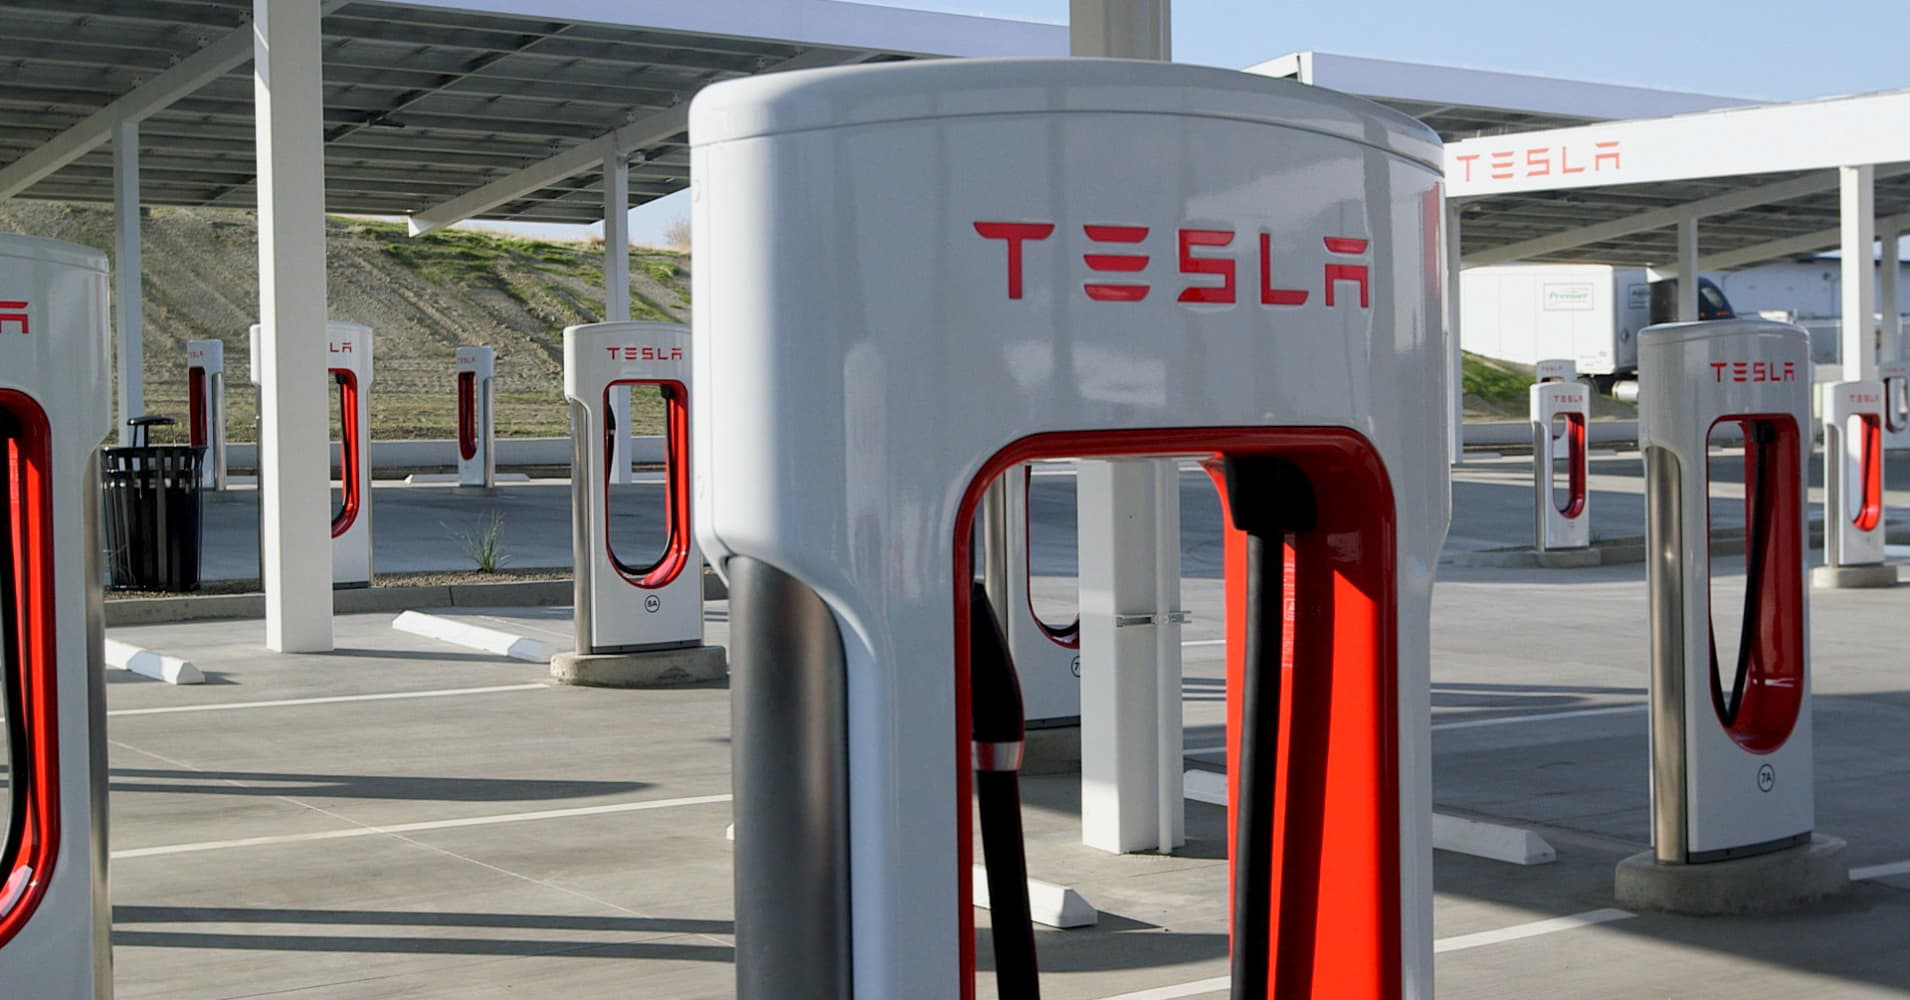 Tesla's charging stations are a massive 'competitive moat,' Morgan Stanley says